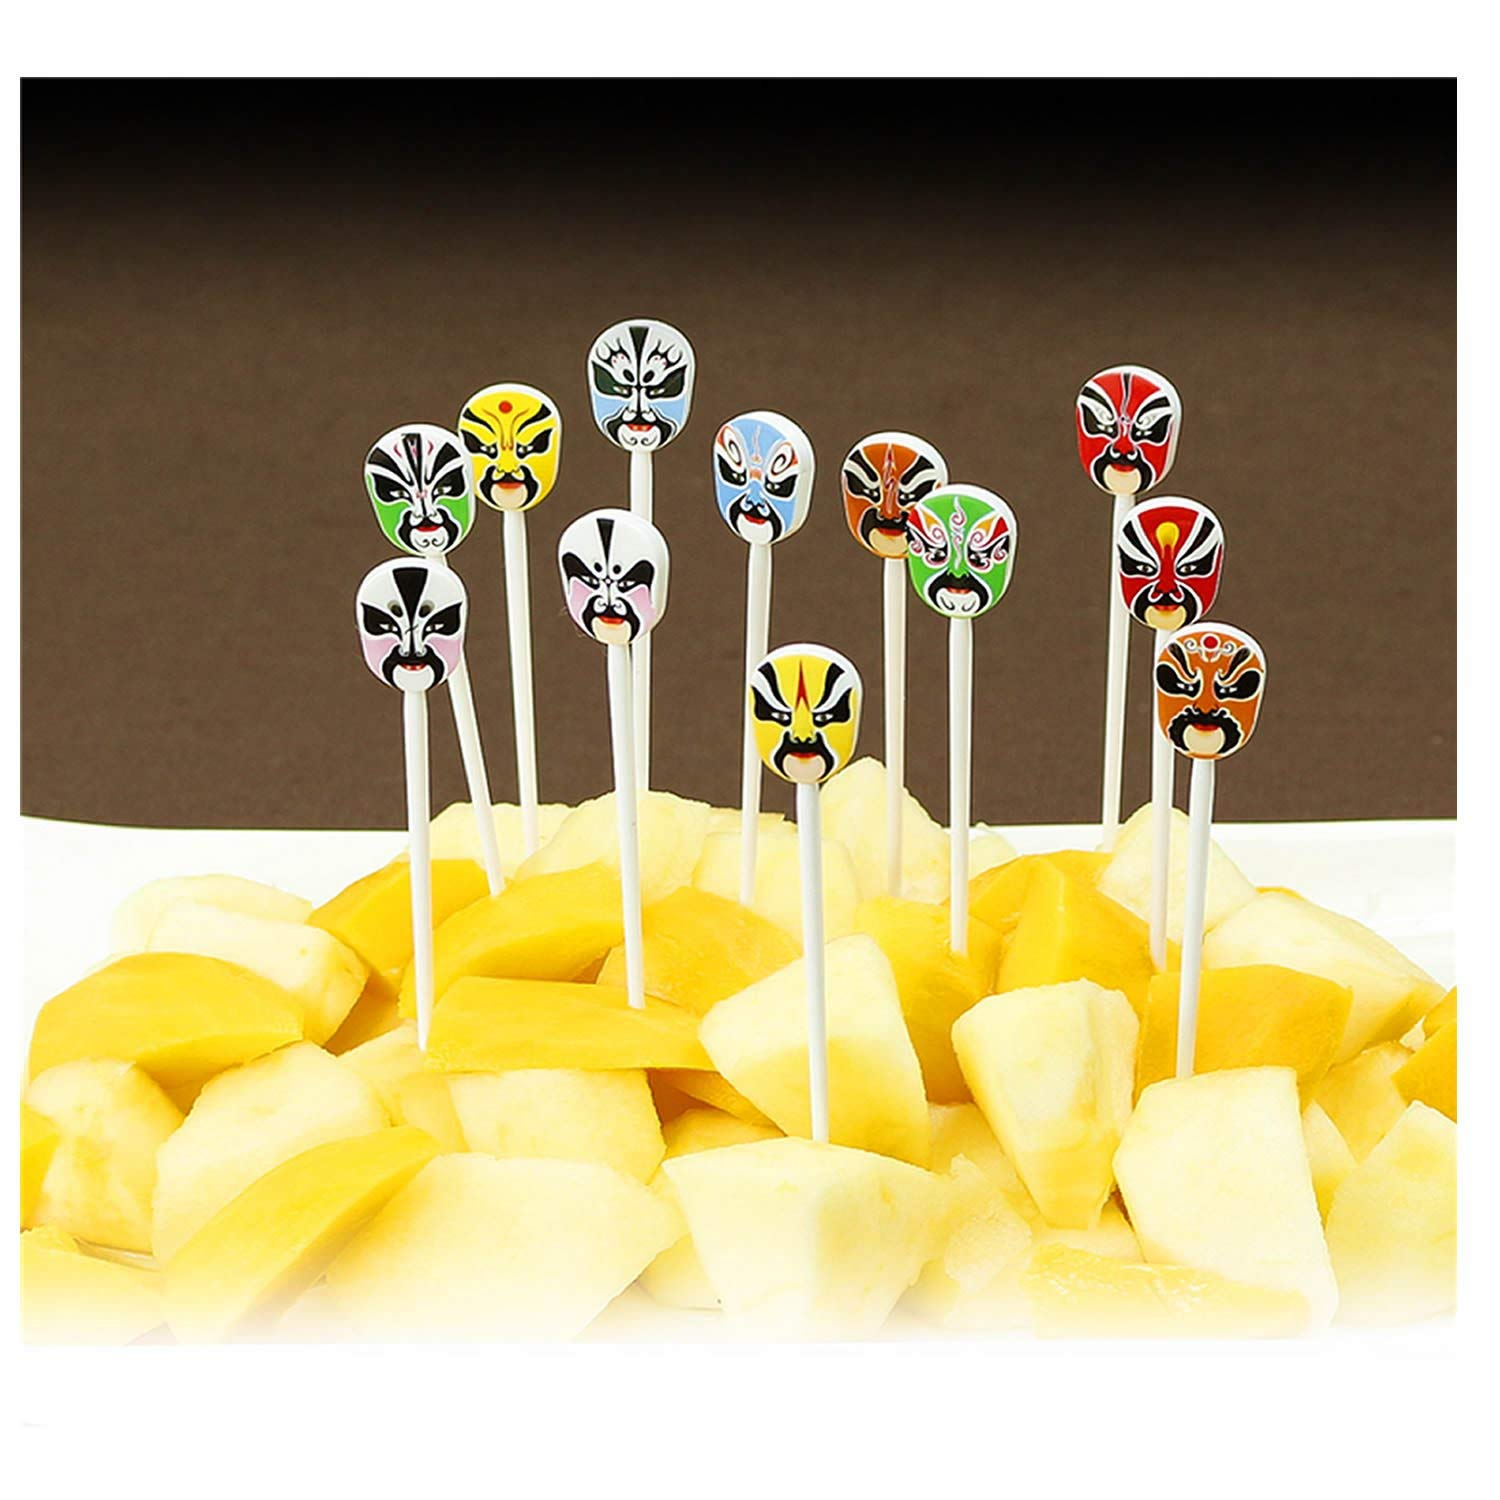 MAXGOODS Chinese Style Beijing Opera Fruit Picks Chinese Gifts Mini Cartoon Peking Opera Fruit Forks Set of 12 Salad Fork Set for Home and Restaurant,Lunch Box